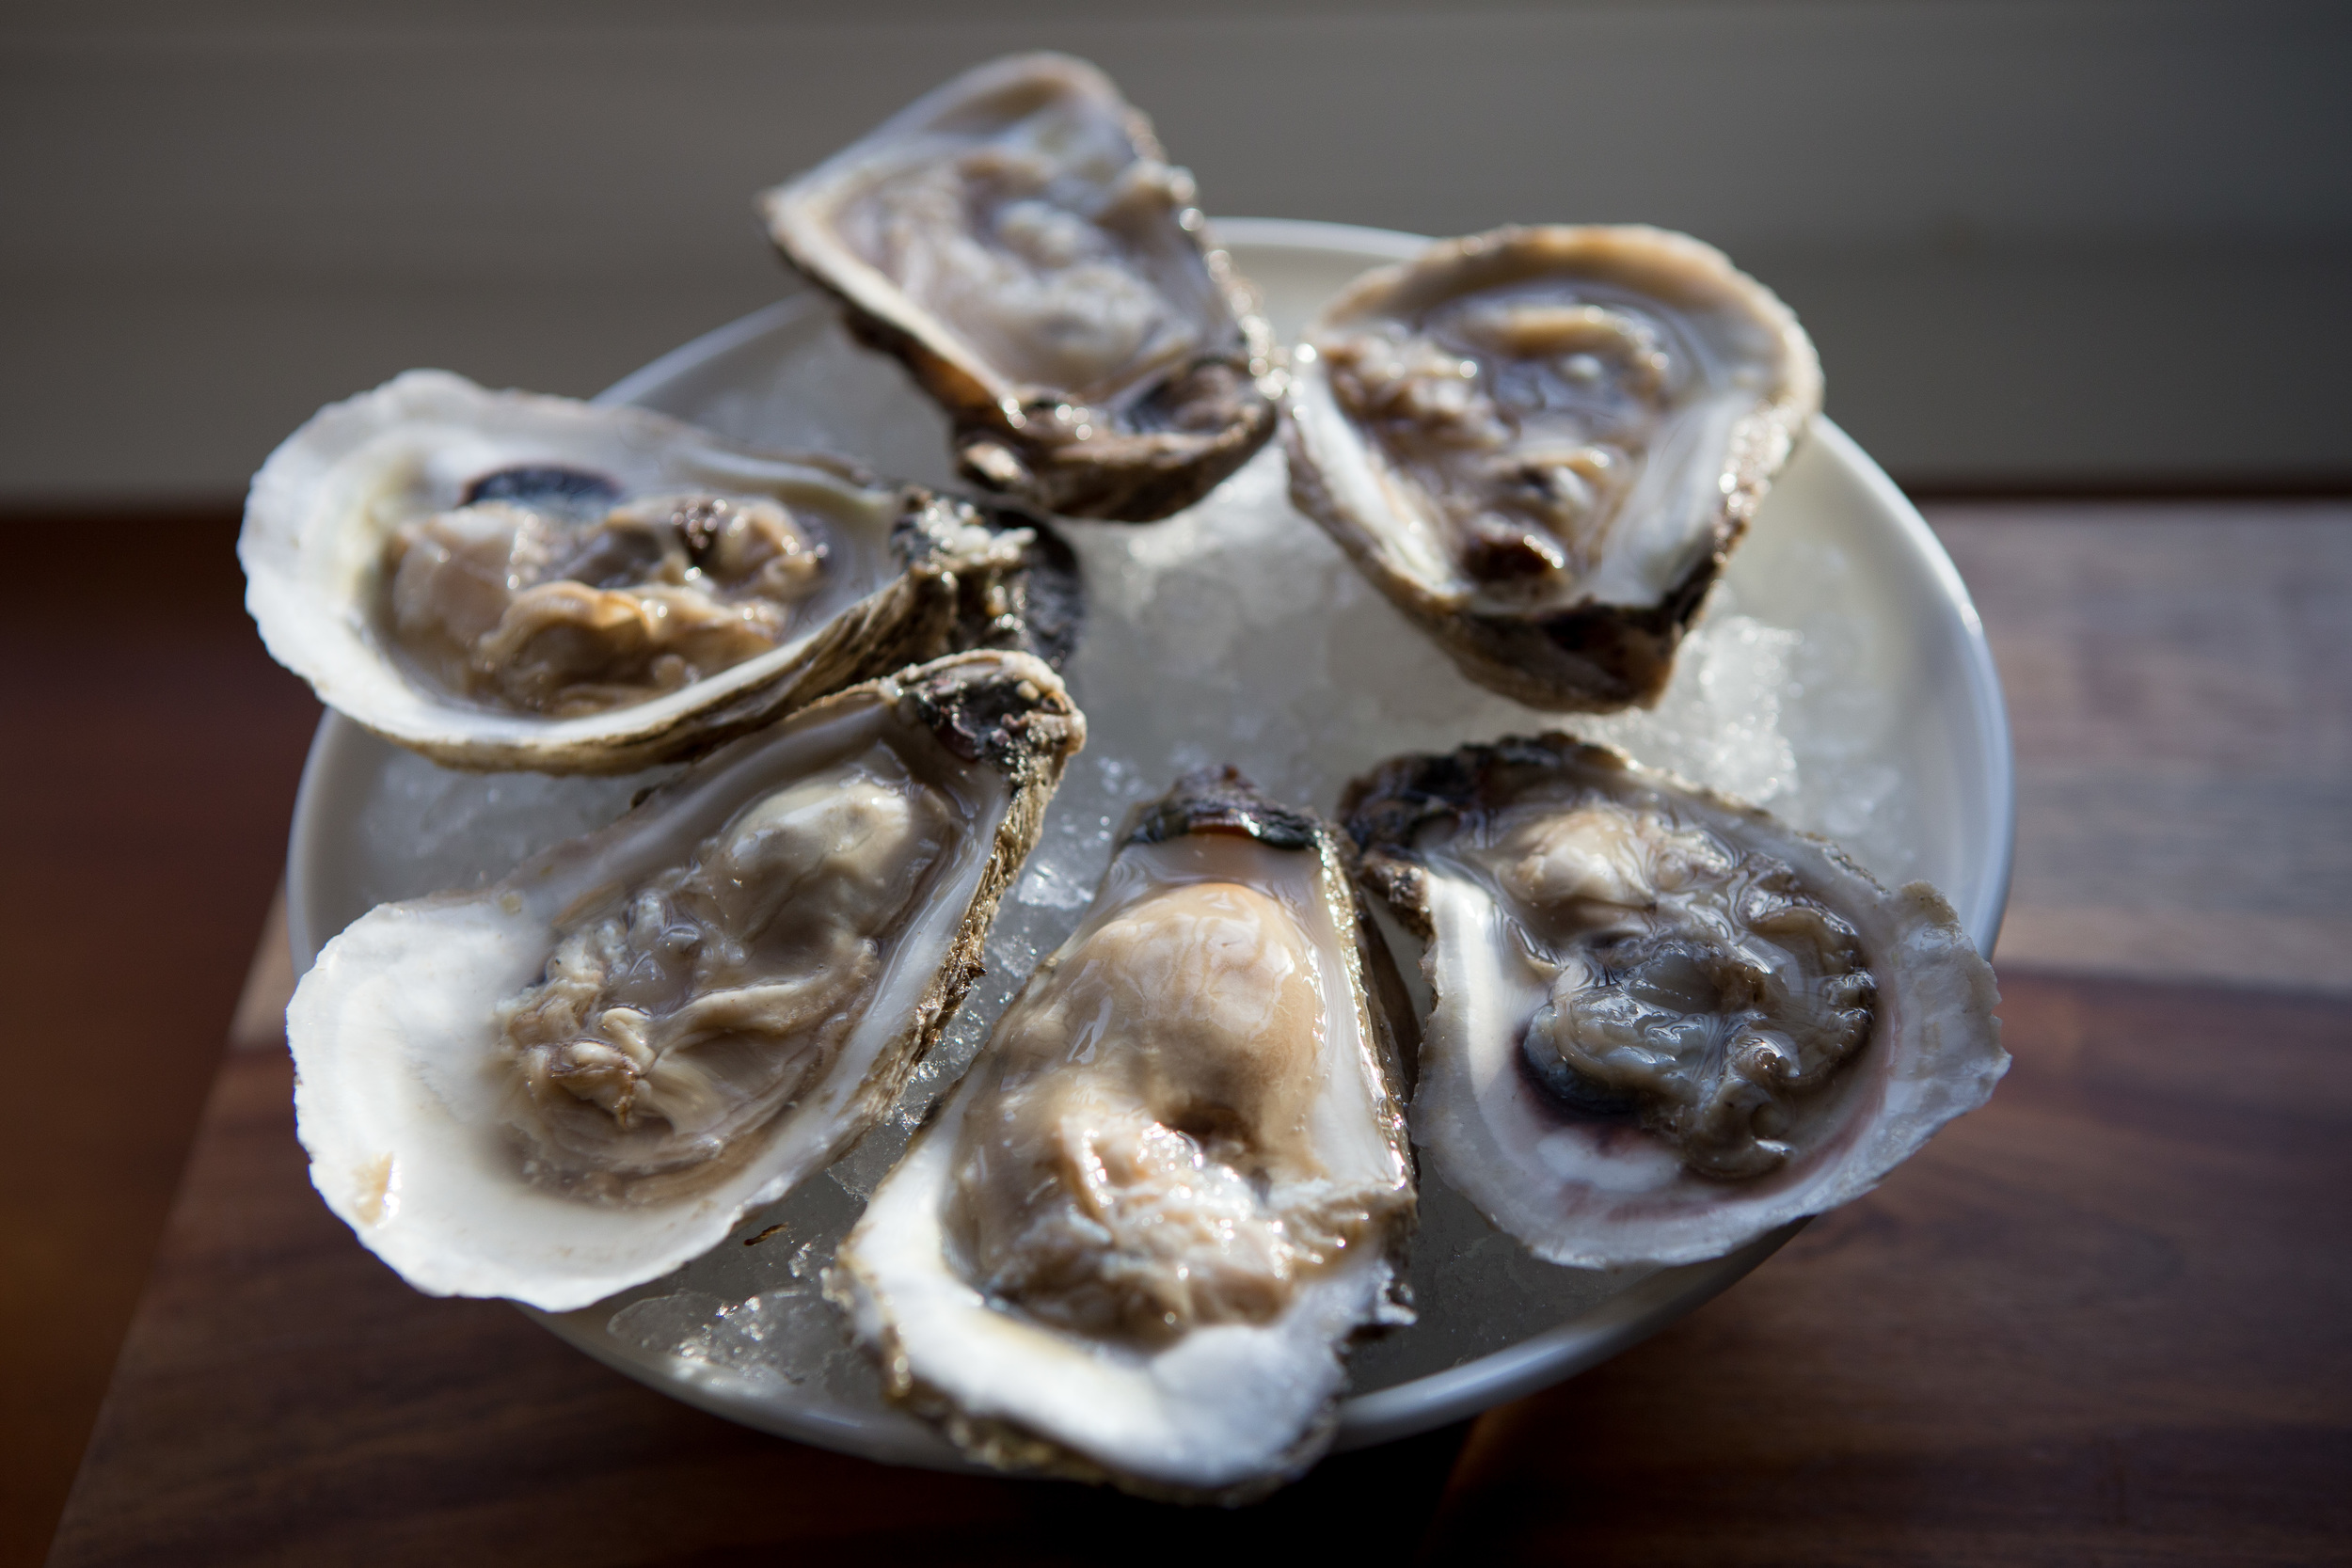 Lynnhaven Oysters, big, juicy and holding all the characteristics of the water they were raised in.